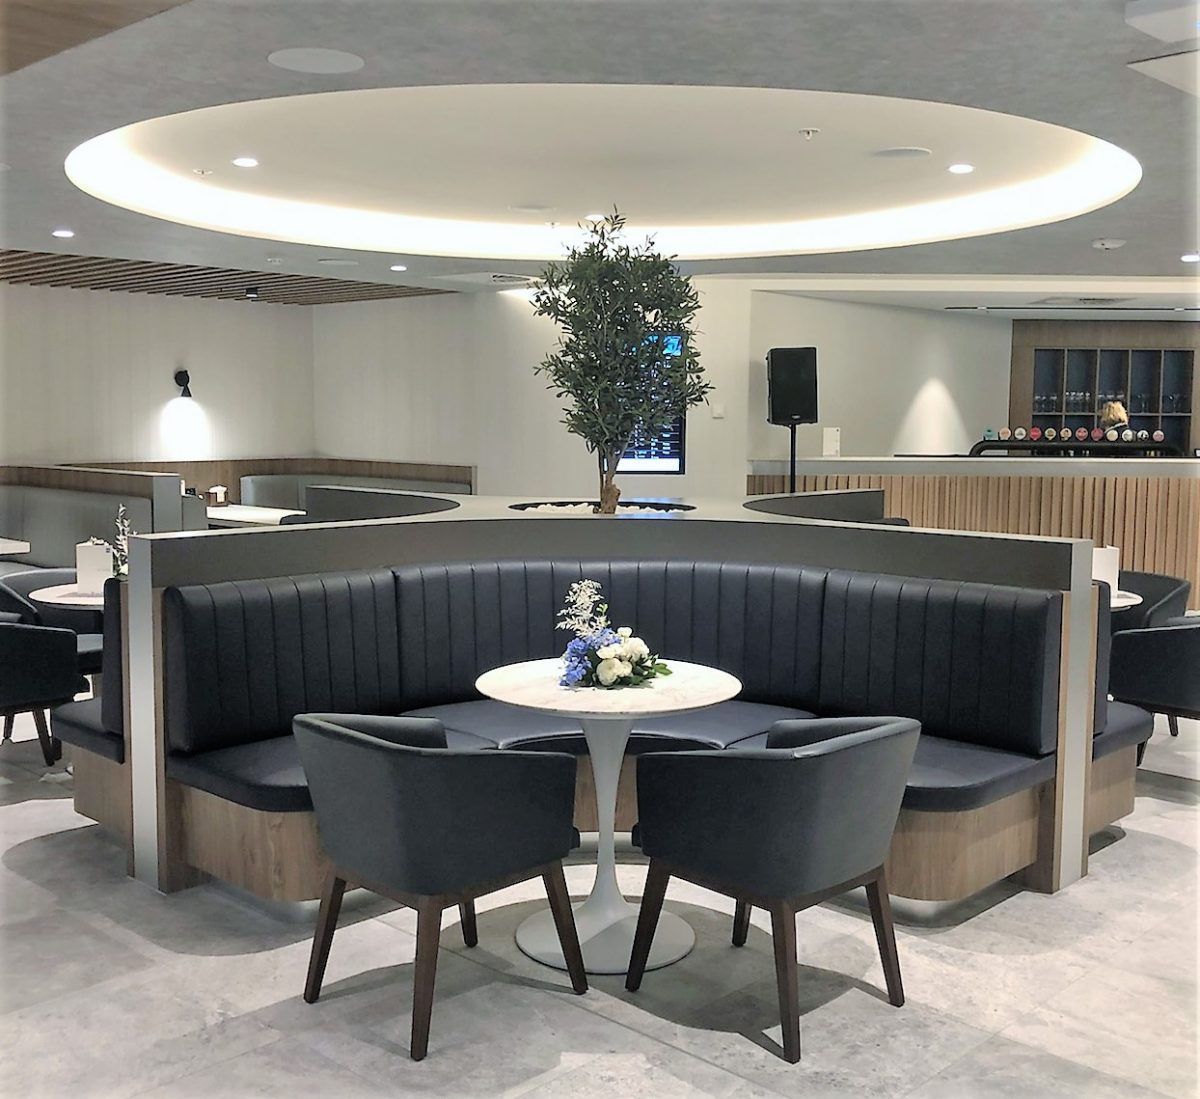 American Express Lounge, Sydney Airport: Dining area